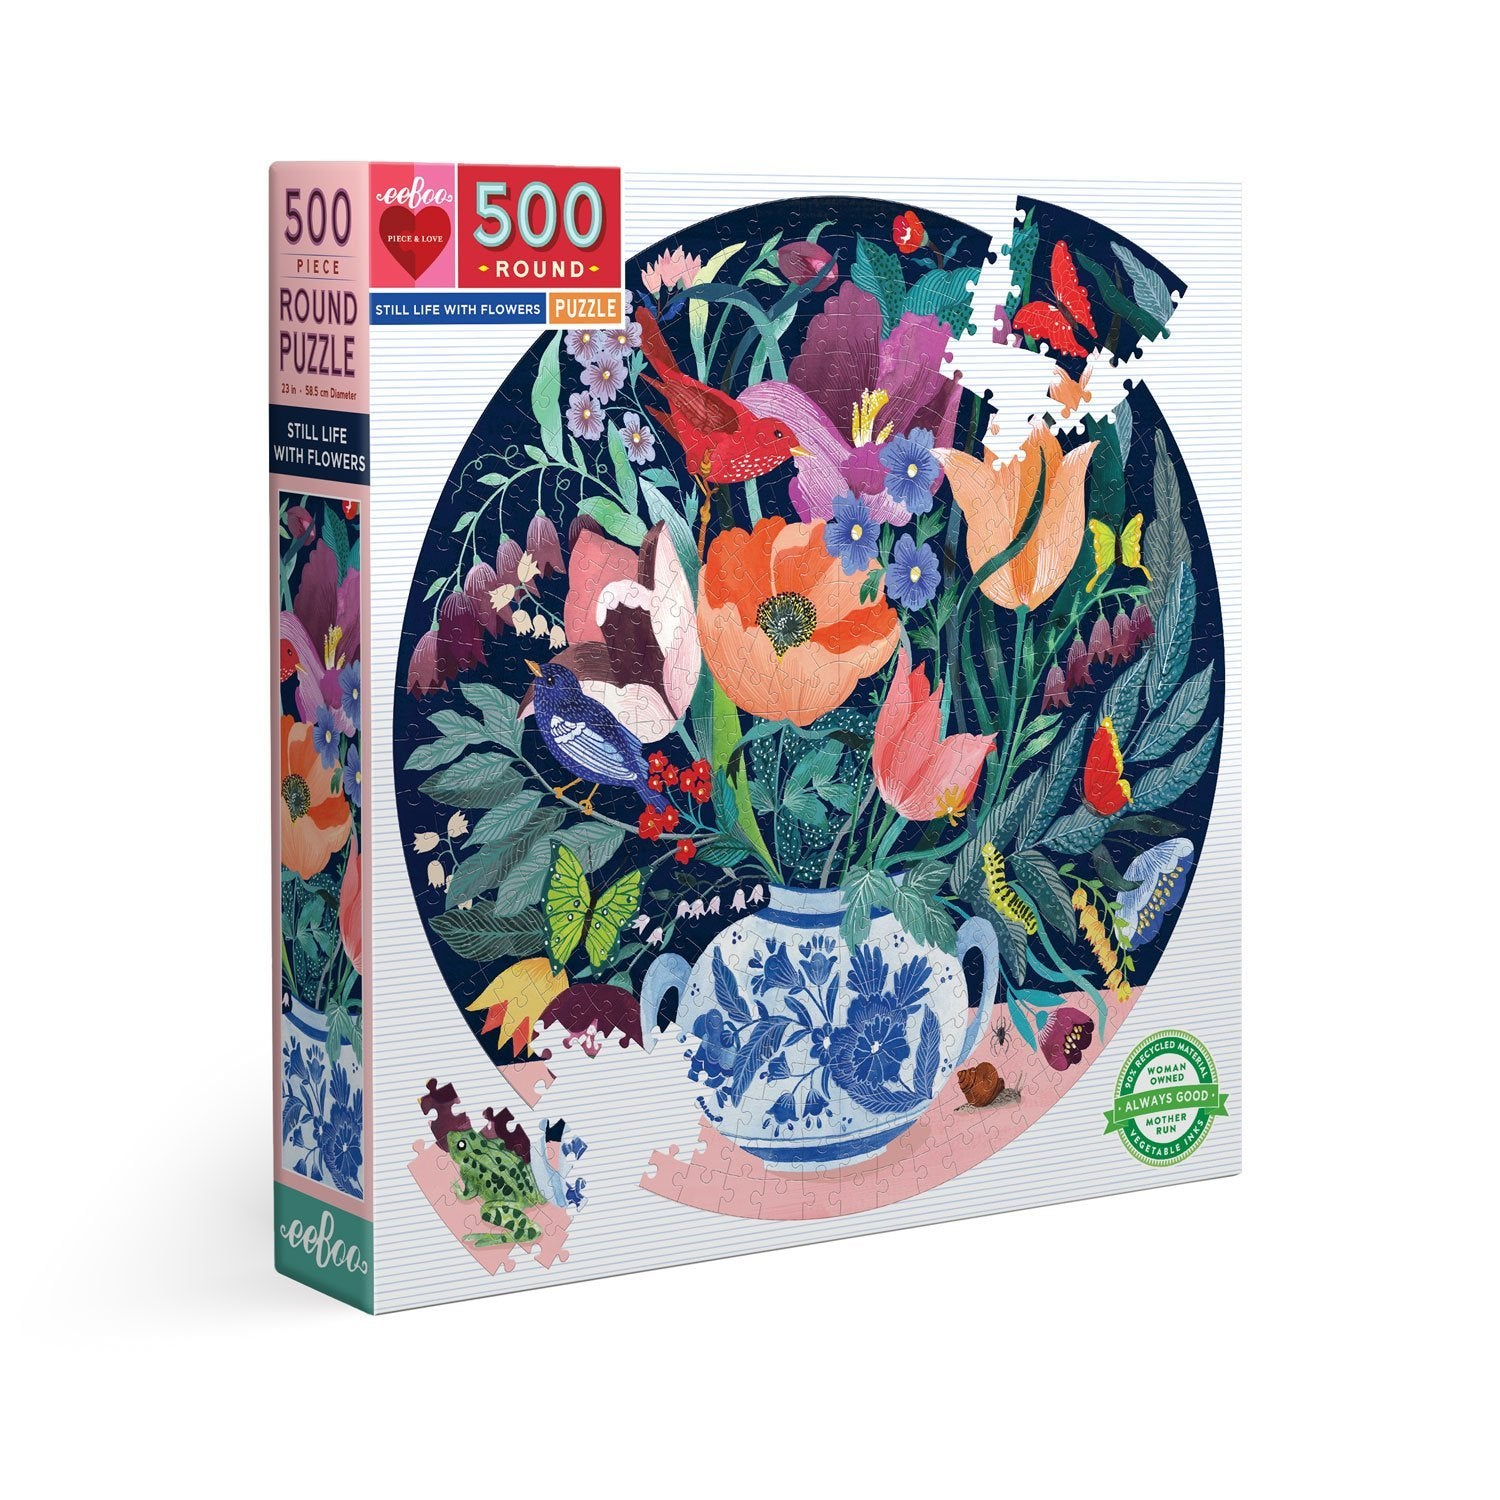 Still Life With Flowers 500 Piece Round Puzzle